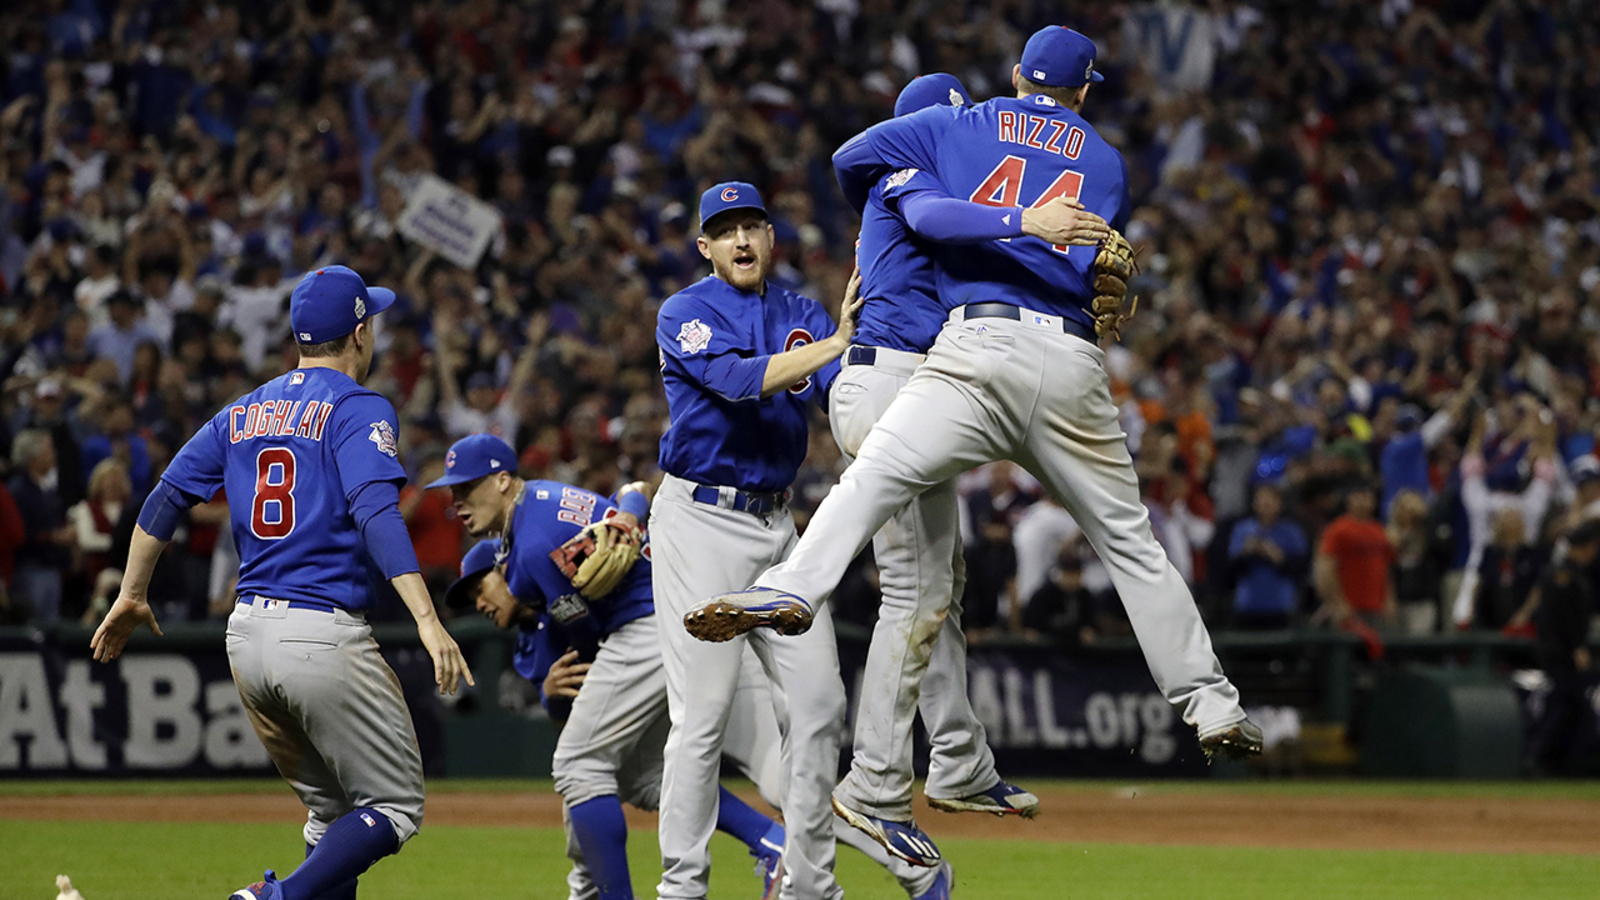 Chicago Cubs Win World Series For First Time In 108 Years